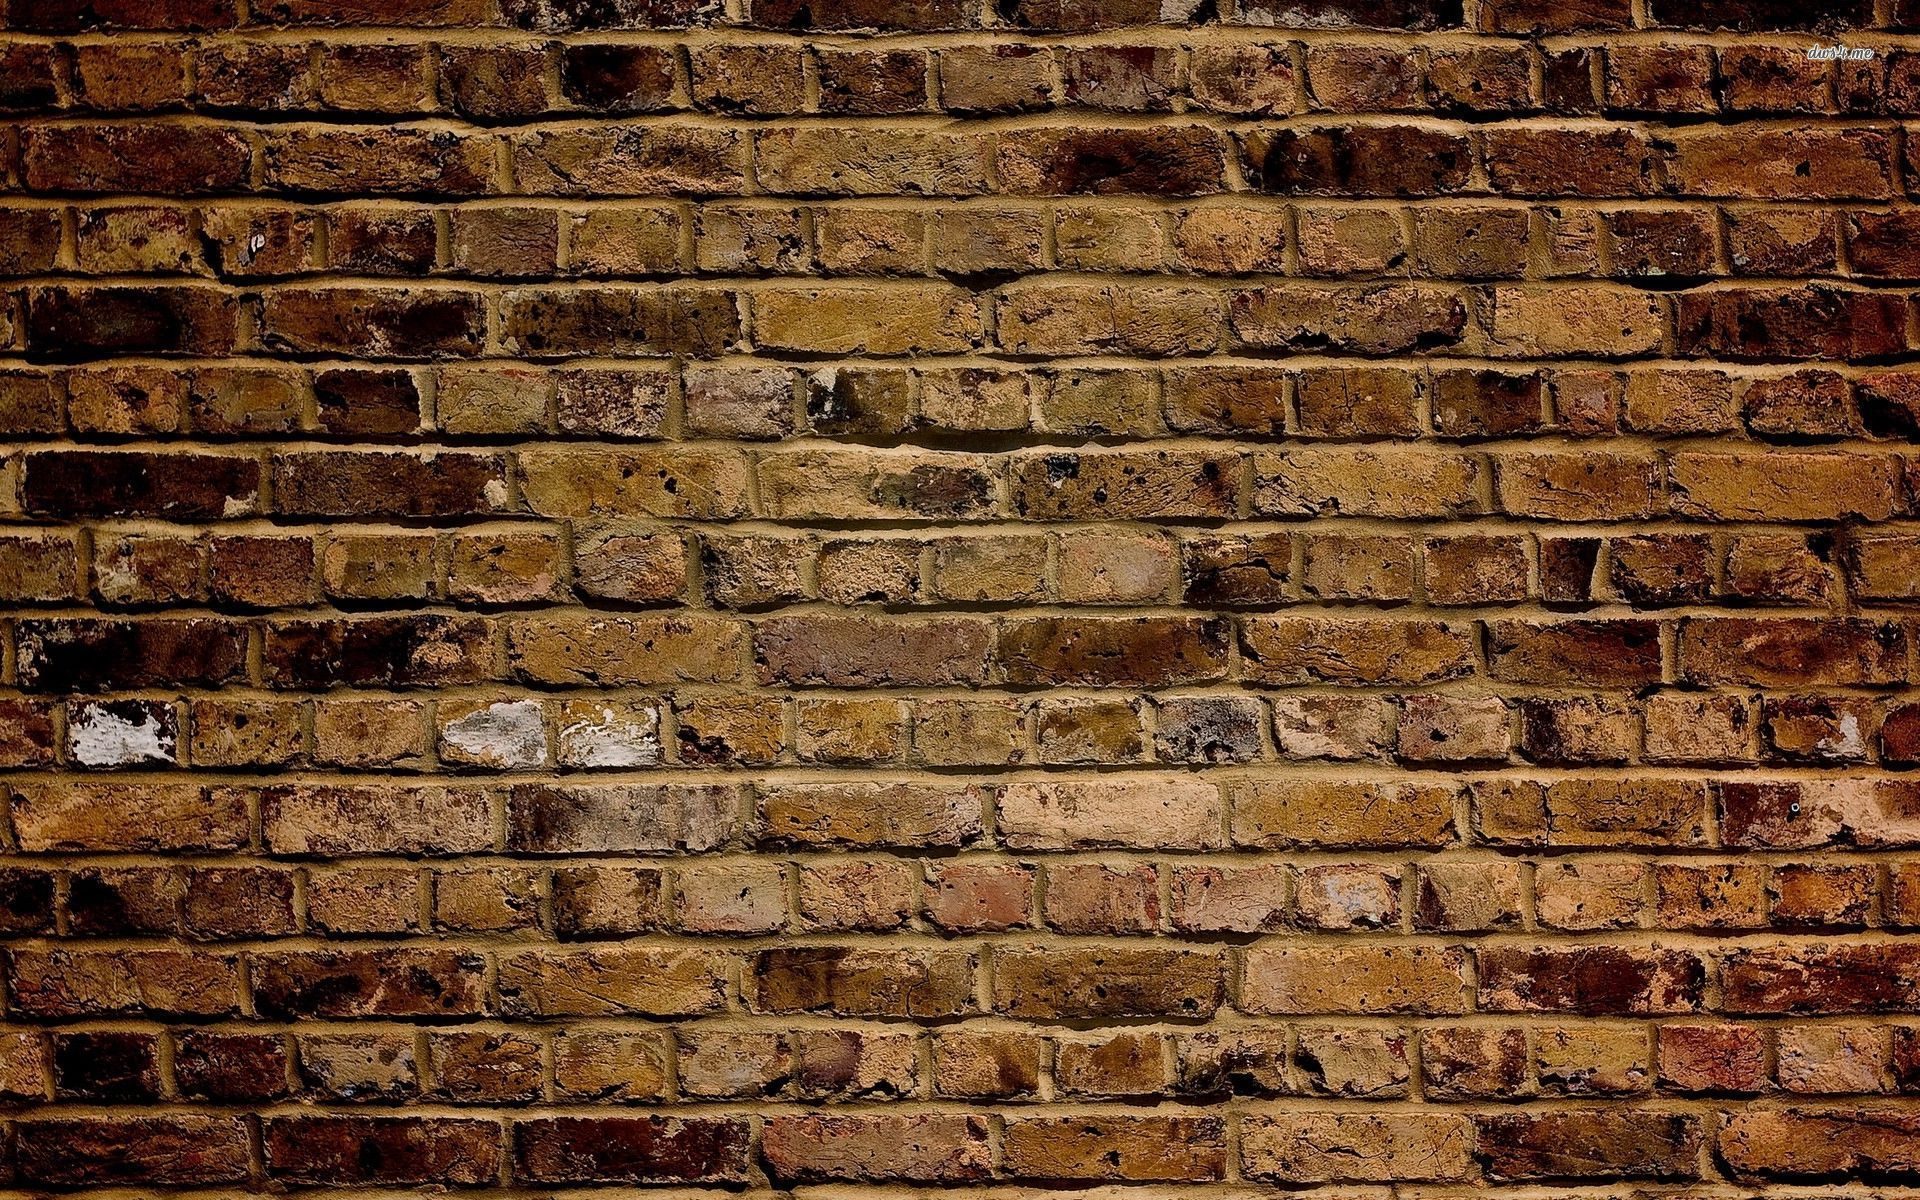 Brick wallpaper 1920x1200 41077 for Pretty wallpaper for walls